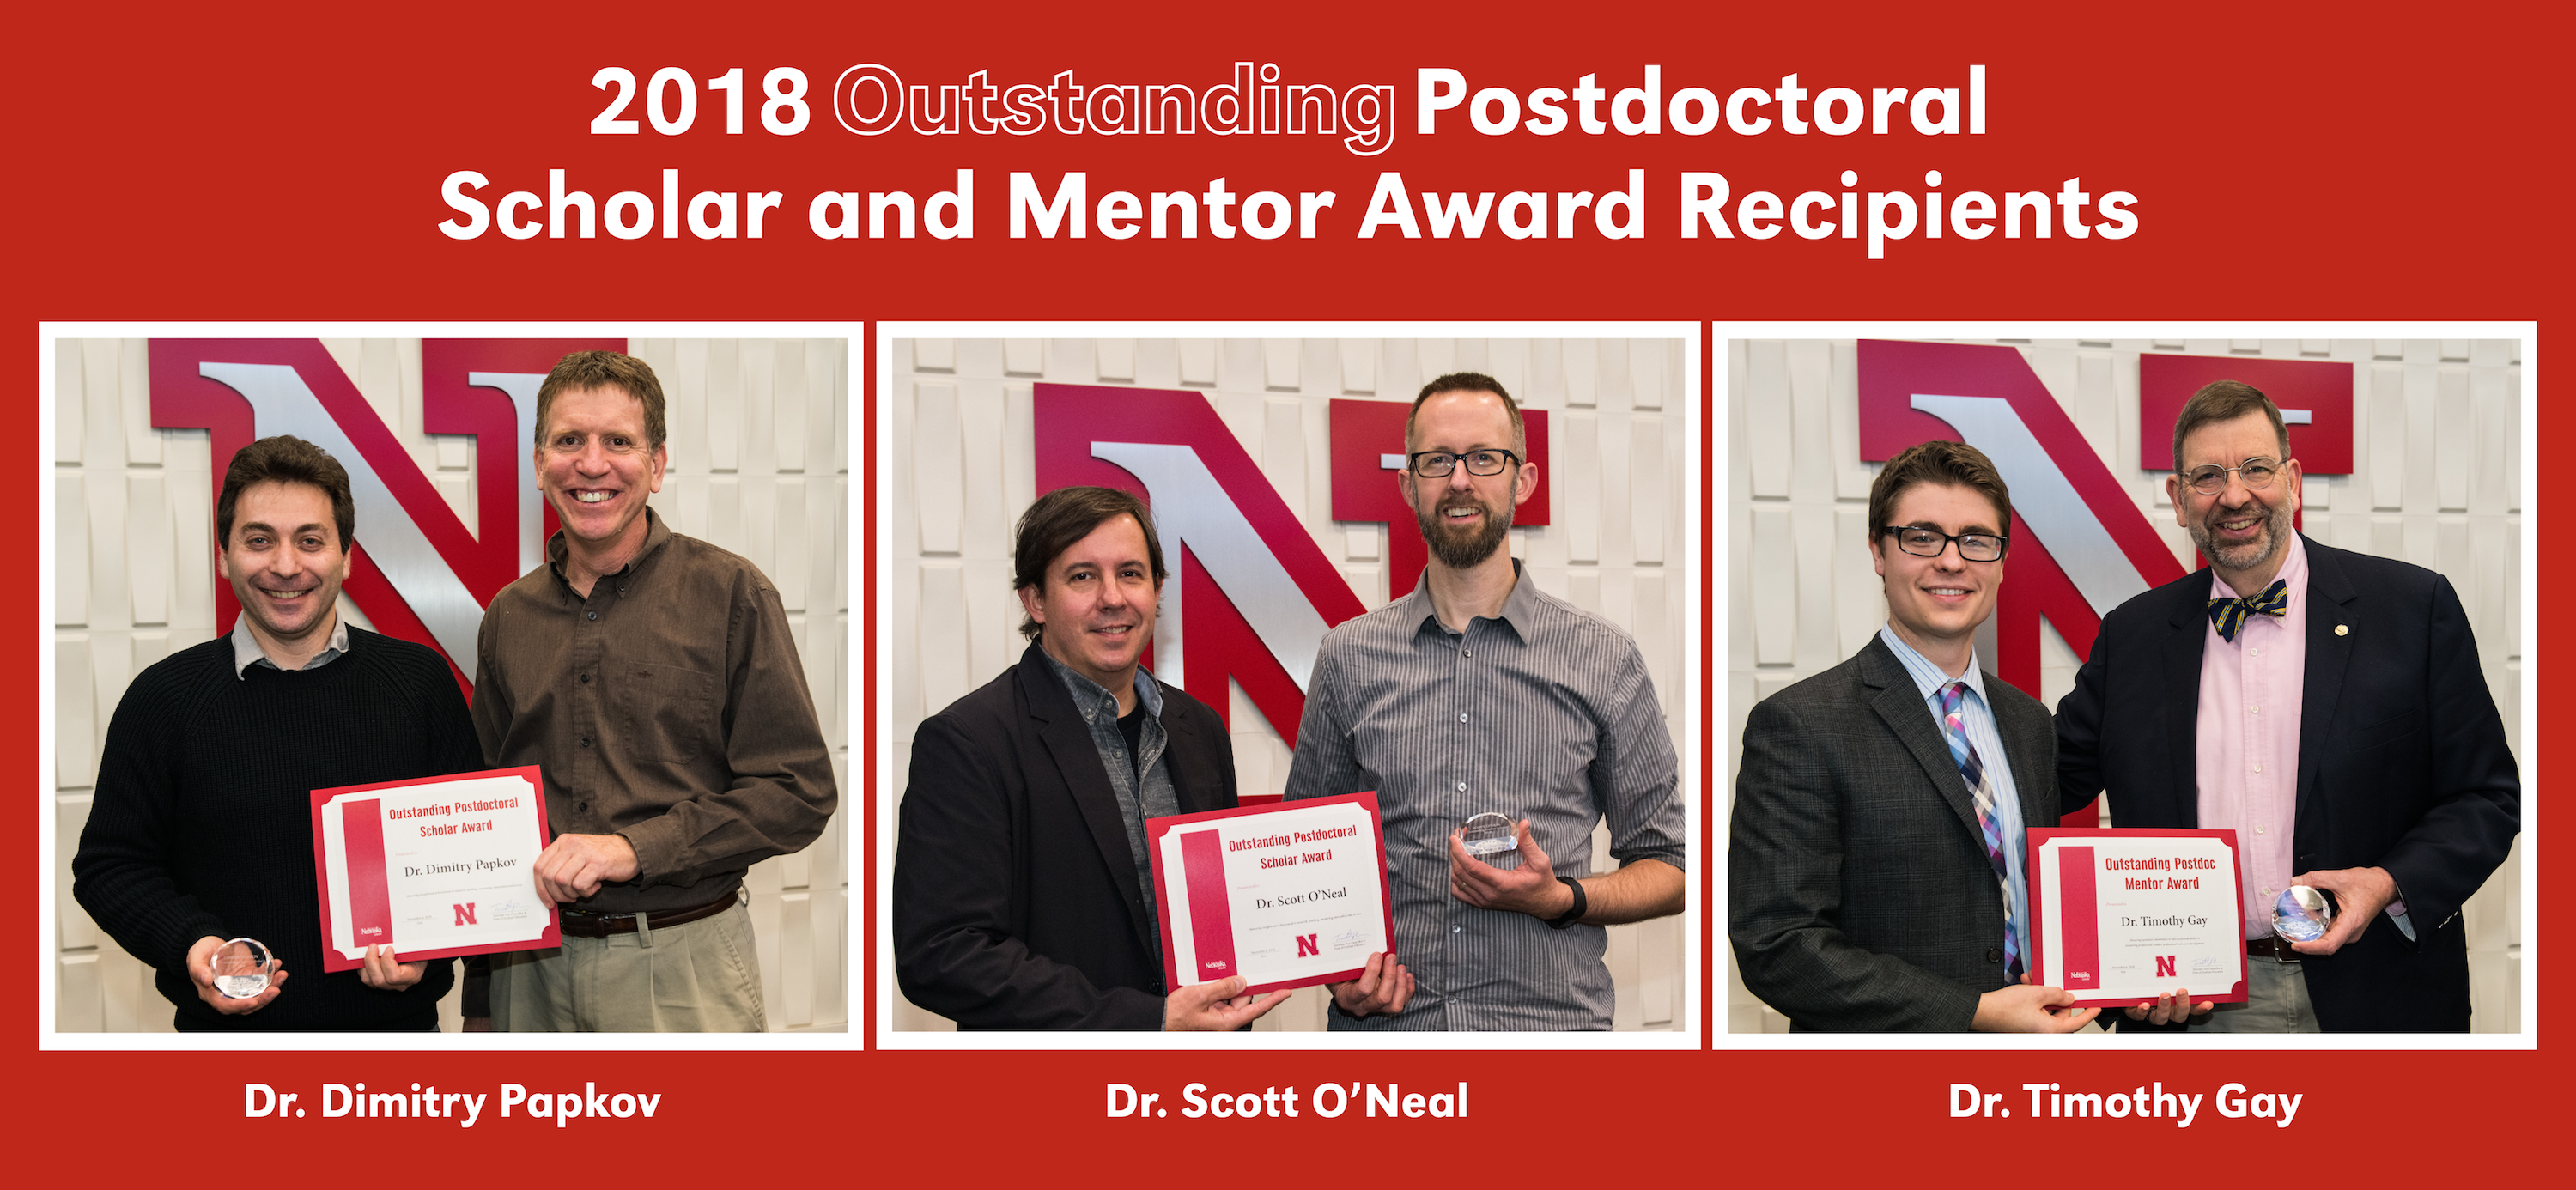 Dr. Dimitry Papkov (farthest left) and Dr. Scott O'Neal (middle right) won a Outstanding Postdoctoral Scholar Award and Dr. Timothy Gay (farthest right) won the Outstanding Postdoctoral Mentor Award during the 2018 Postdoctoral & Mentor Awards Luncheon.